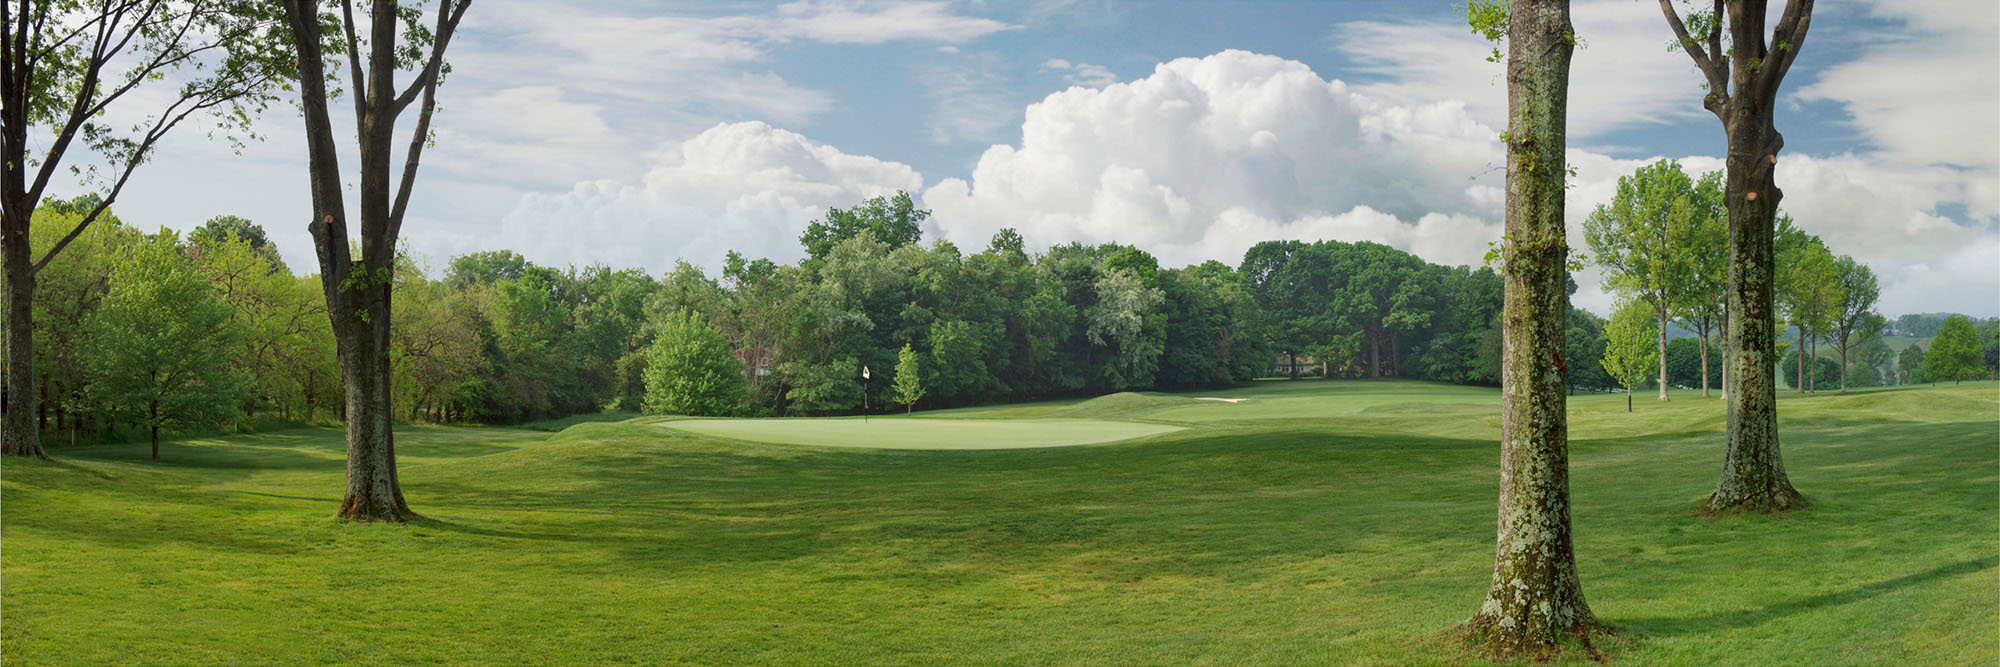 Golf Course Image - Pittsburgh Field Club No. 11